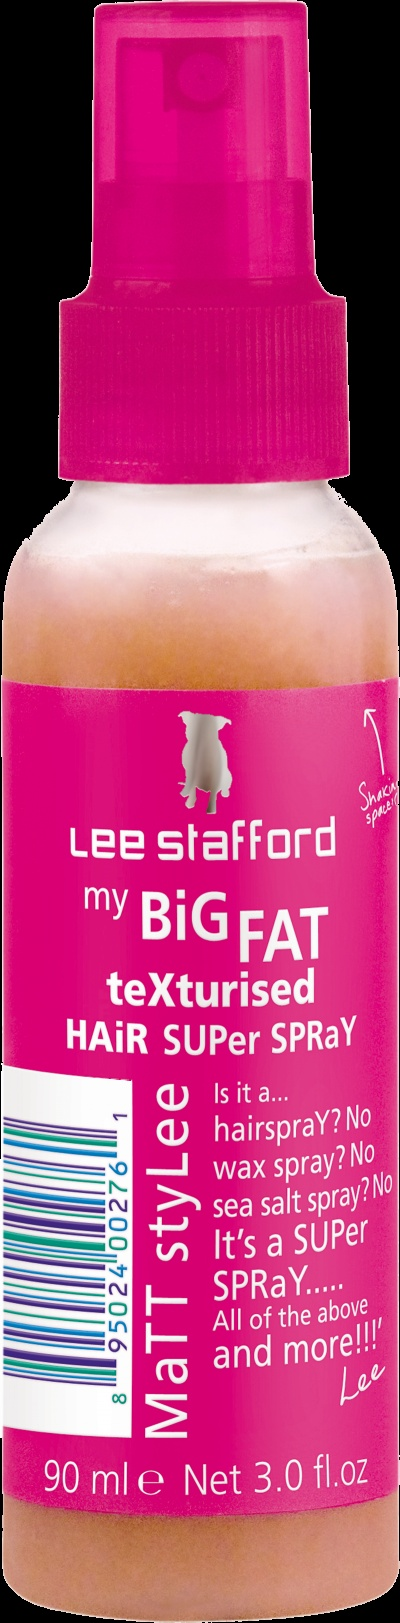 Lee Stafford 'My Big Fat Texturised Hair Super Spray'. Recently bought this and it is great for creating that sea salt beachy hair look.